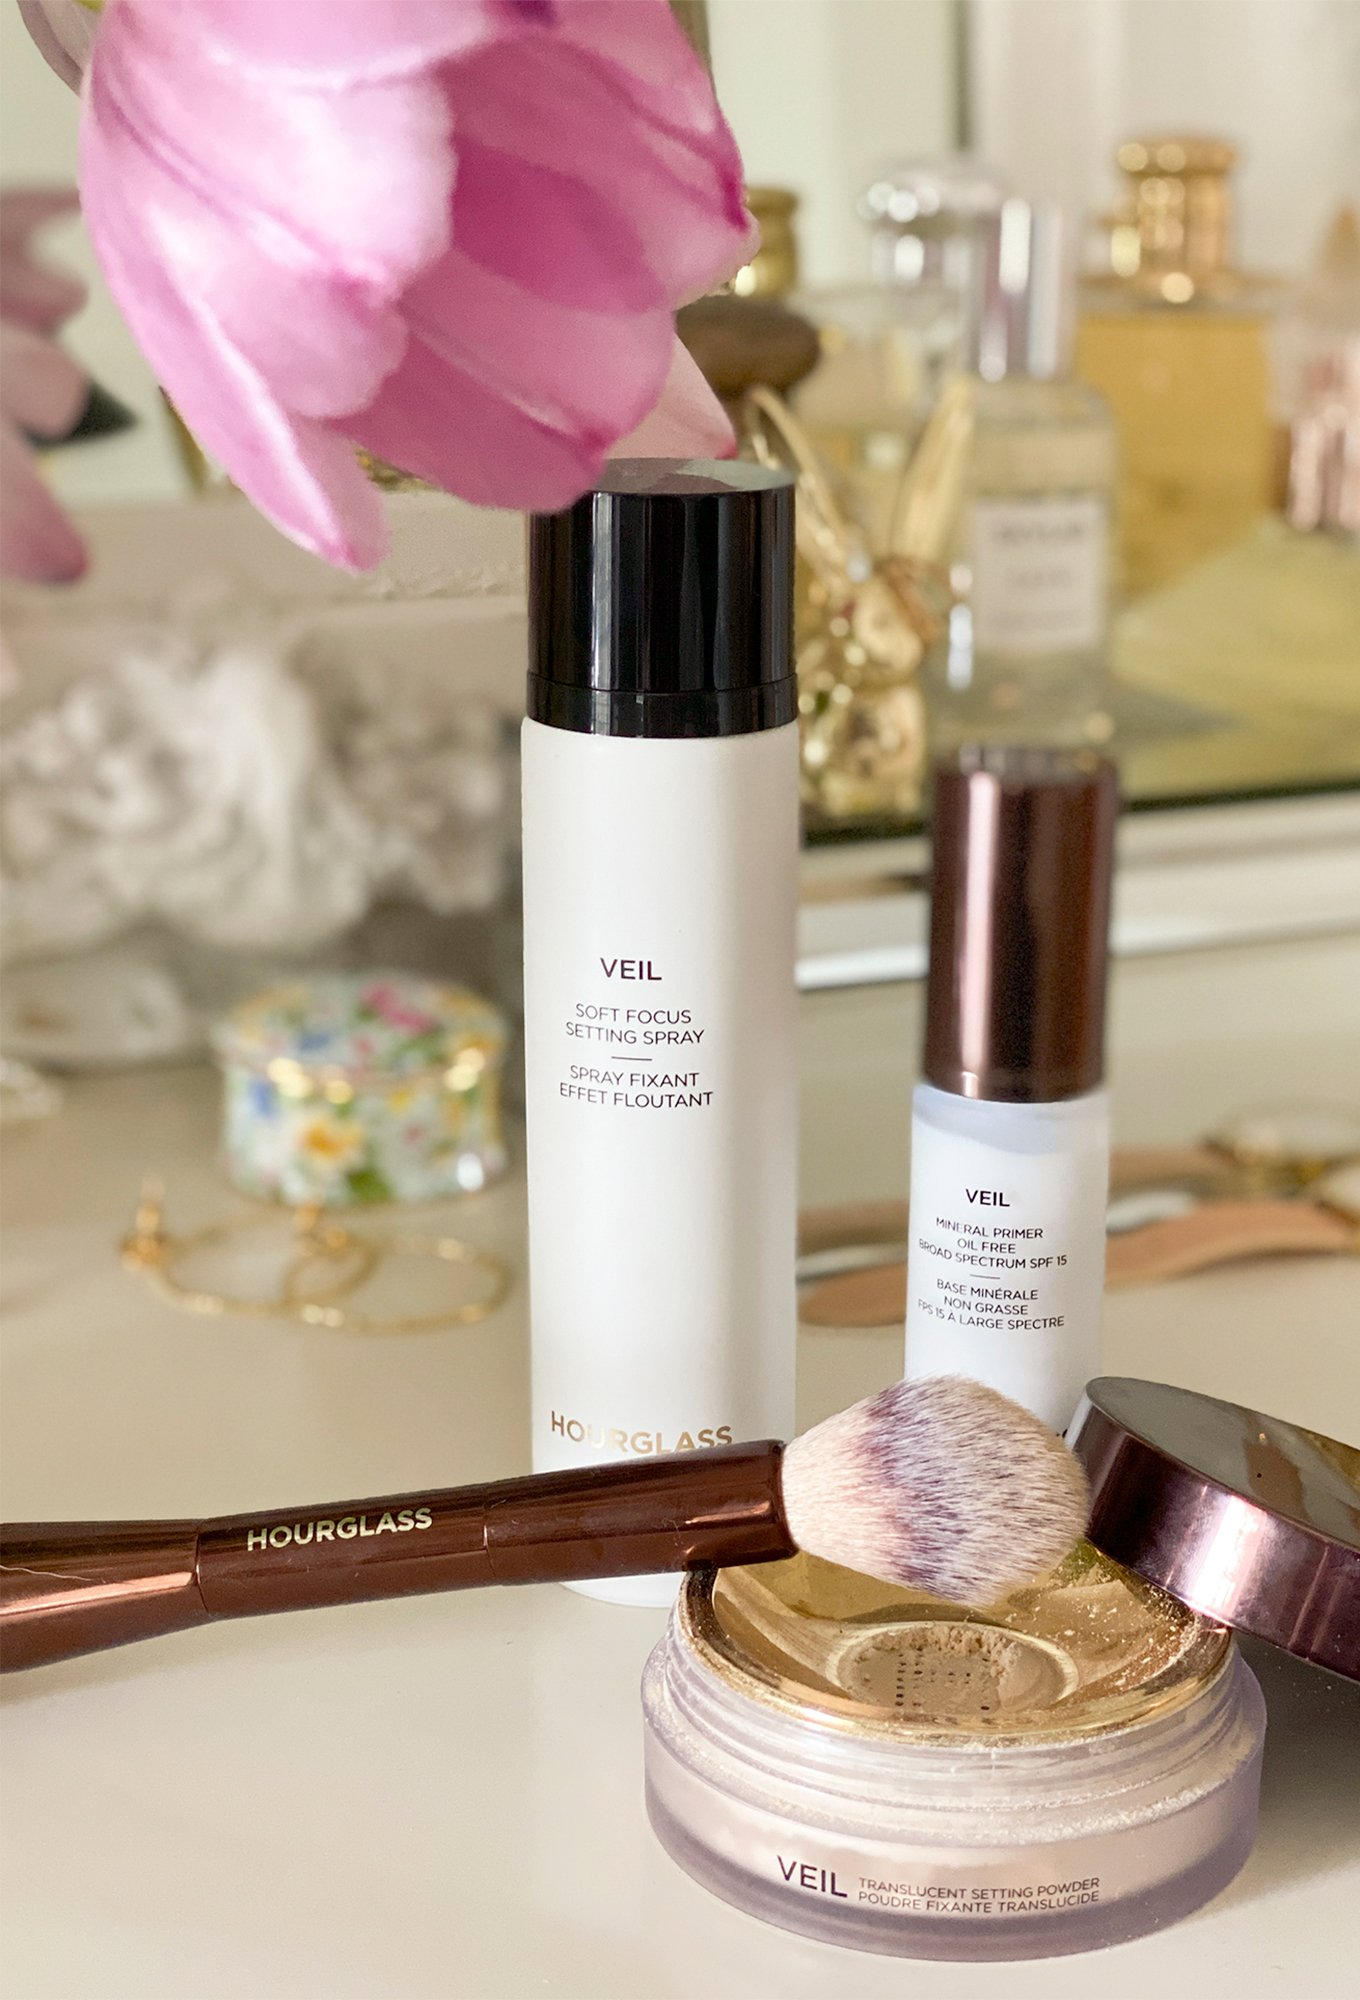 Hourglass Cosmetics Review